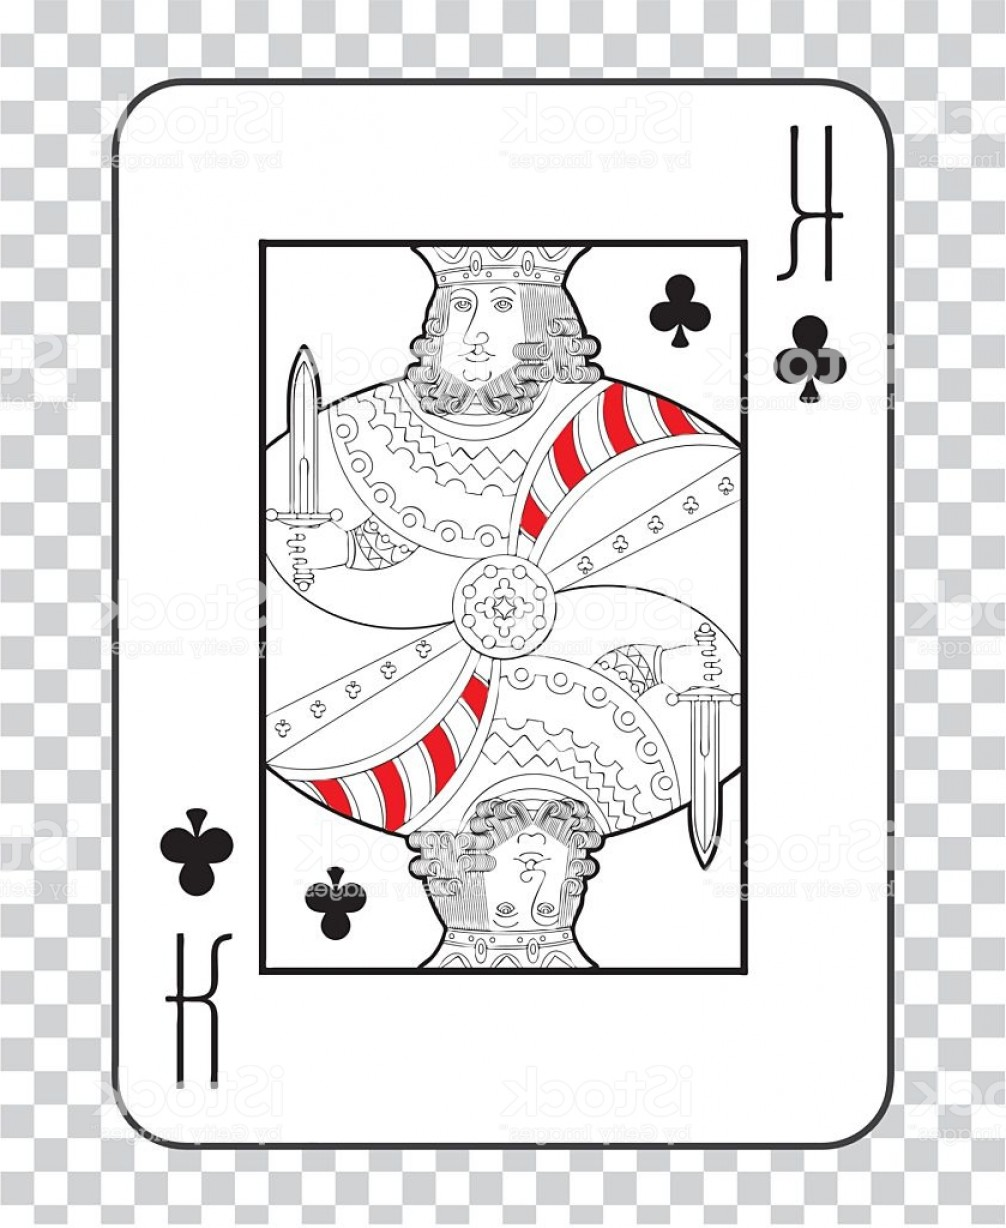 Single Playing Card Vector: Single Playing Cards Vector King Clubs Gm